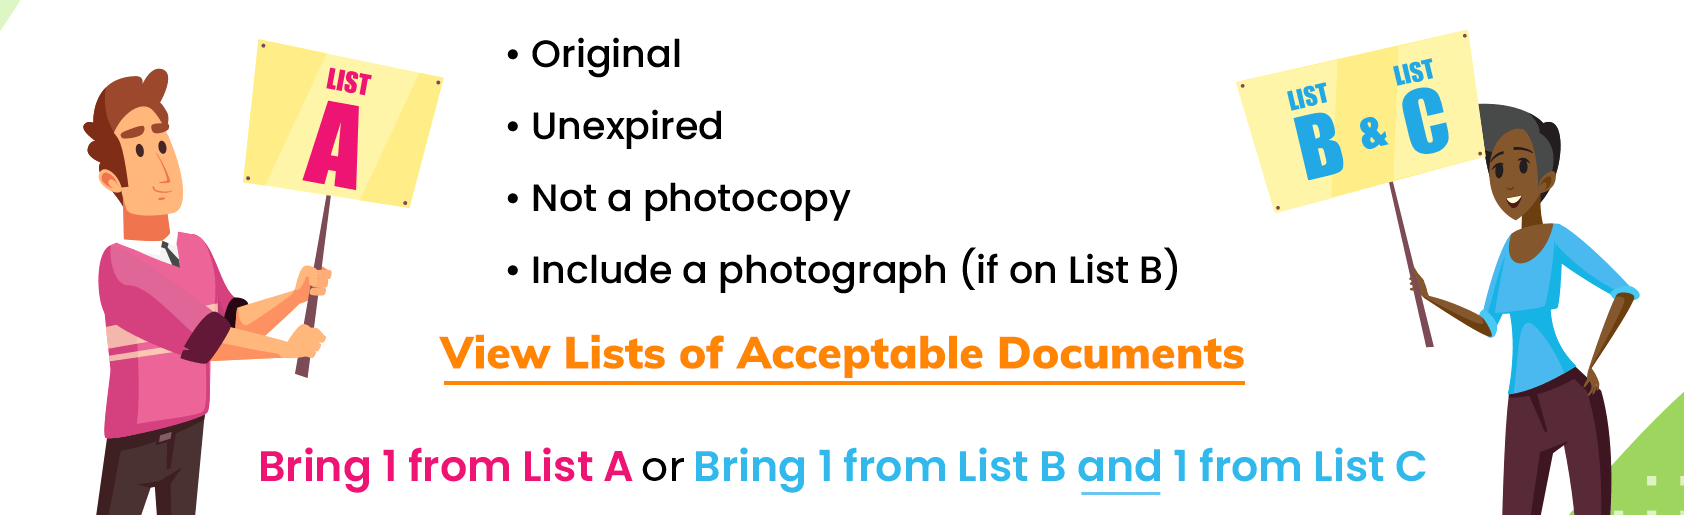 Original, unexpired, not a photocopy, and include a photograph (if on List B). Bring 1 from List A or Bring 1 from List B and 1 from List C. Follow this link to read a list of acceptable documents.